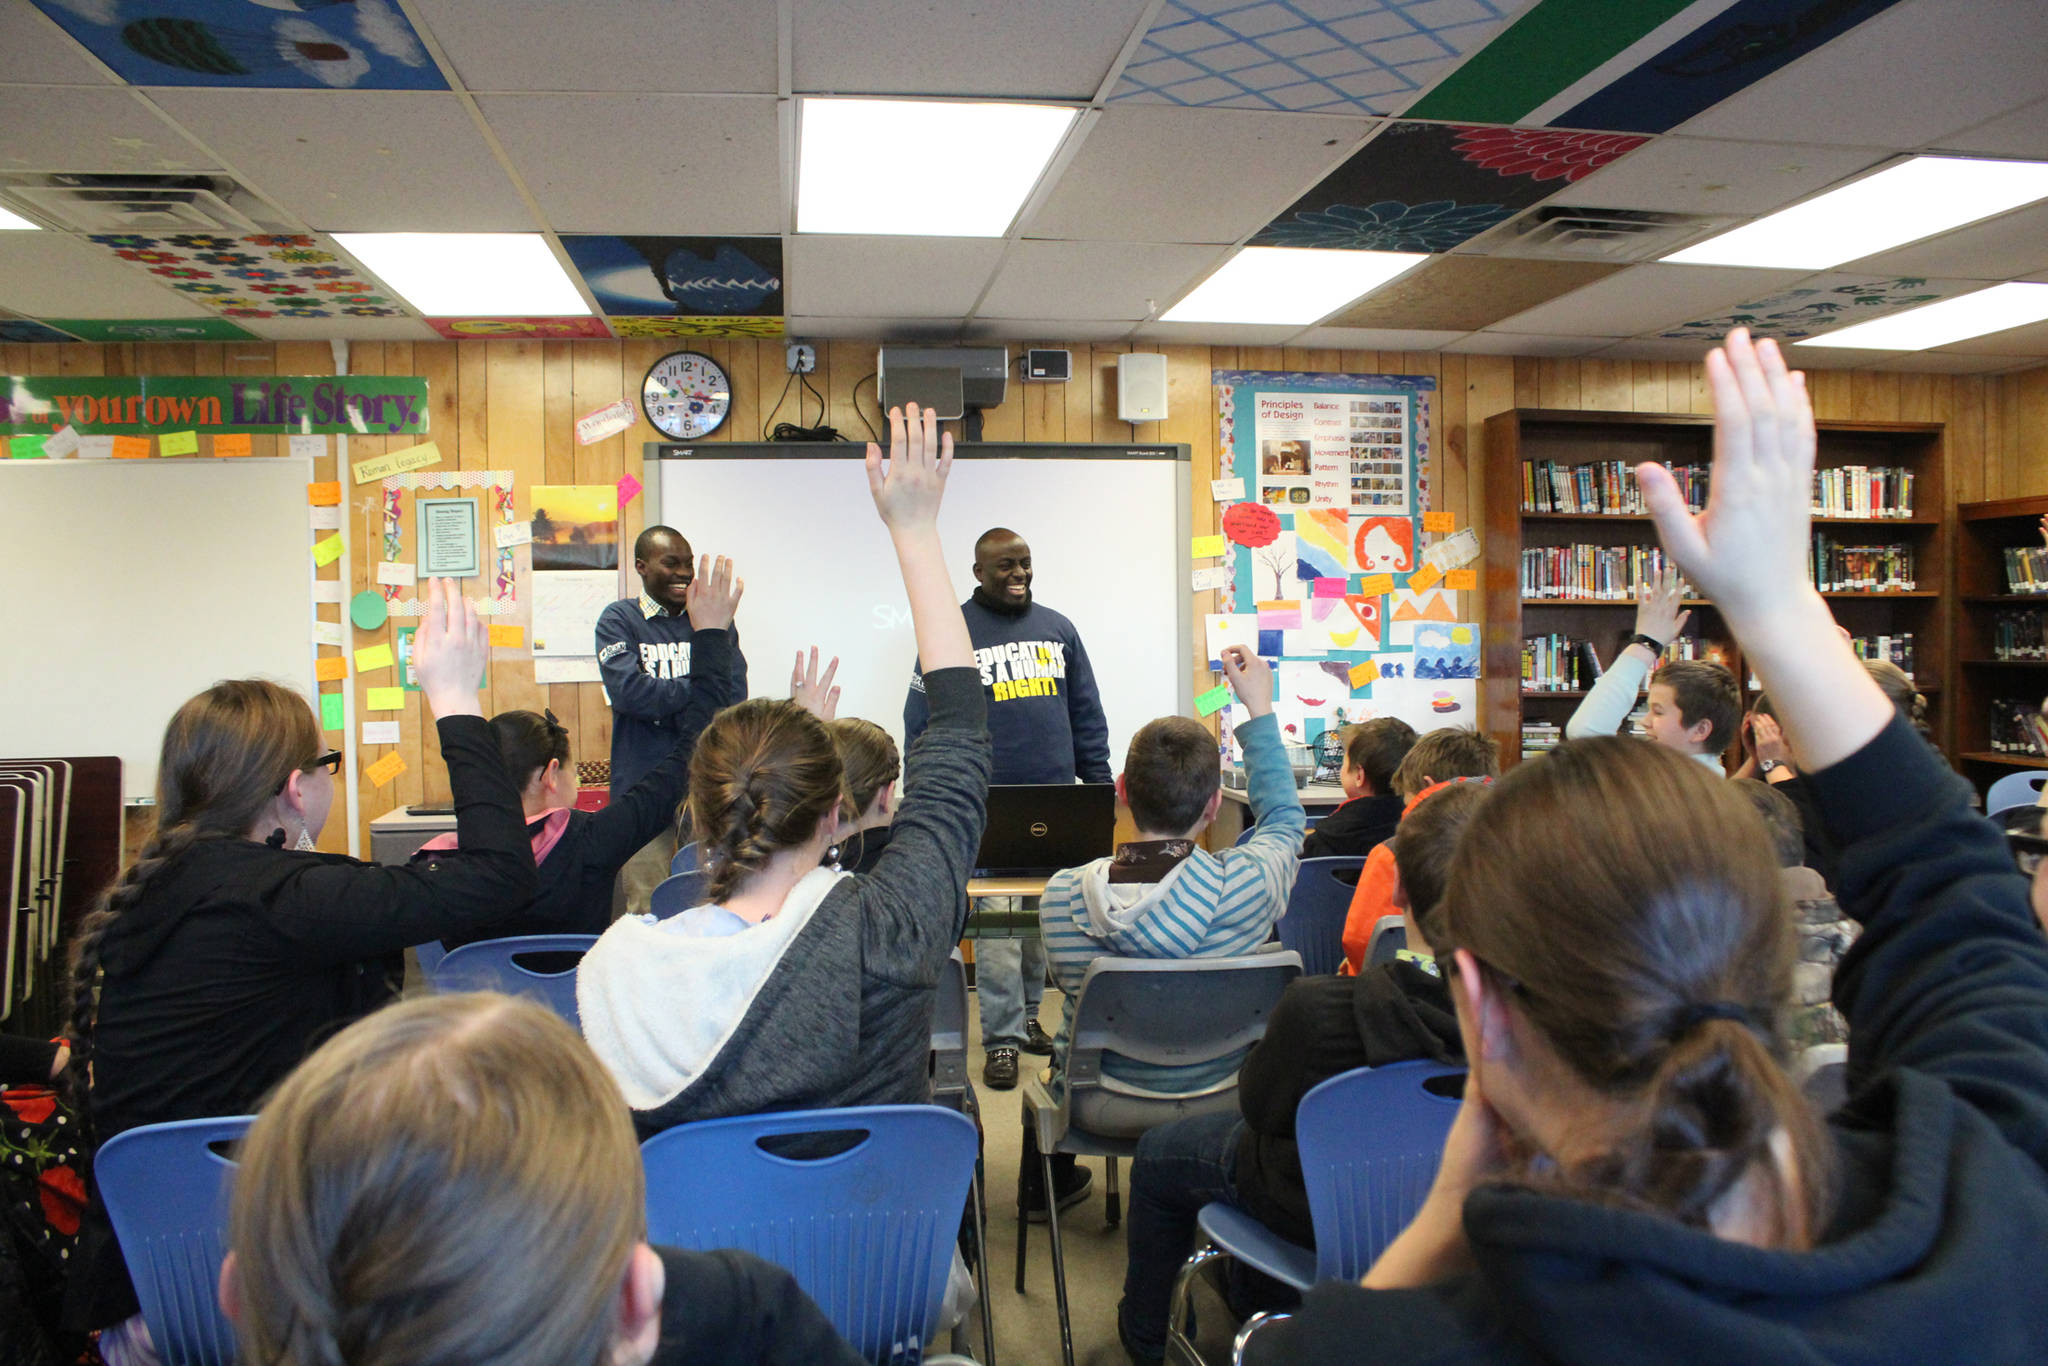 Human rights lawyer and Kenya native Chris Mburu, right, and Kimani Nyambura, left, laugh as the majority of a room full of Razdolna students raise their hand to respond to the question of how many of them have the last name Basargin, during a presentation Friday, Nov. 17, 2017 at the school in Razdolna, Alaska. Mburu, who started a foundation to put Kenyan children through school after being sponsored himself, gave presentations to several Kenai Peninsula schools this week along with Nyambura, one of the students who has been able to go to school thanks to the foundation. (Photo by Megan Pacer/Homer News)